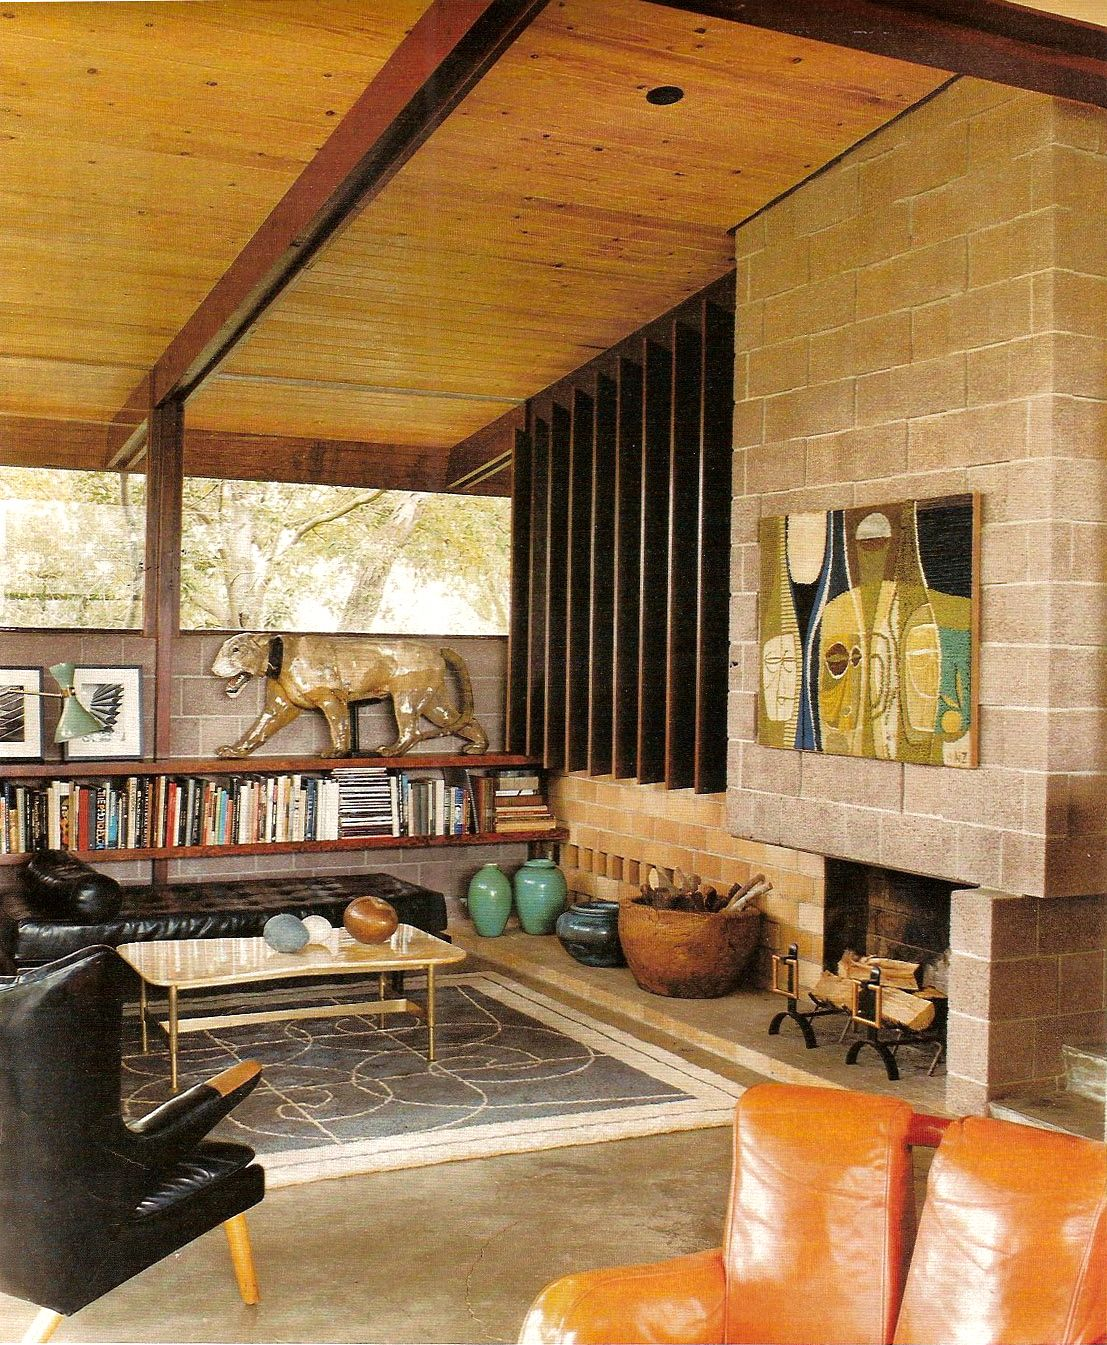 BOOKSHELVES ON WALL -- Los Angeles Times Magazine. Vintage